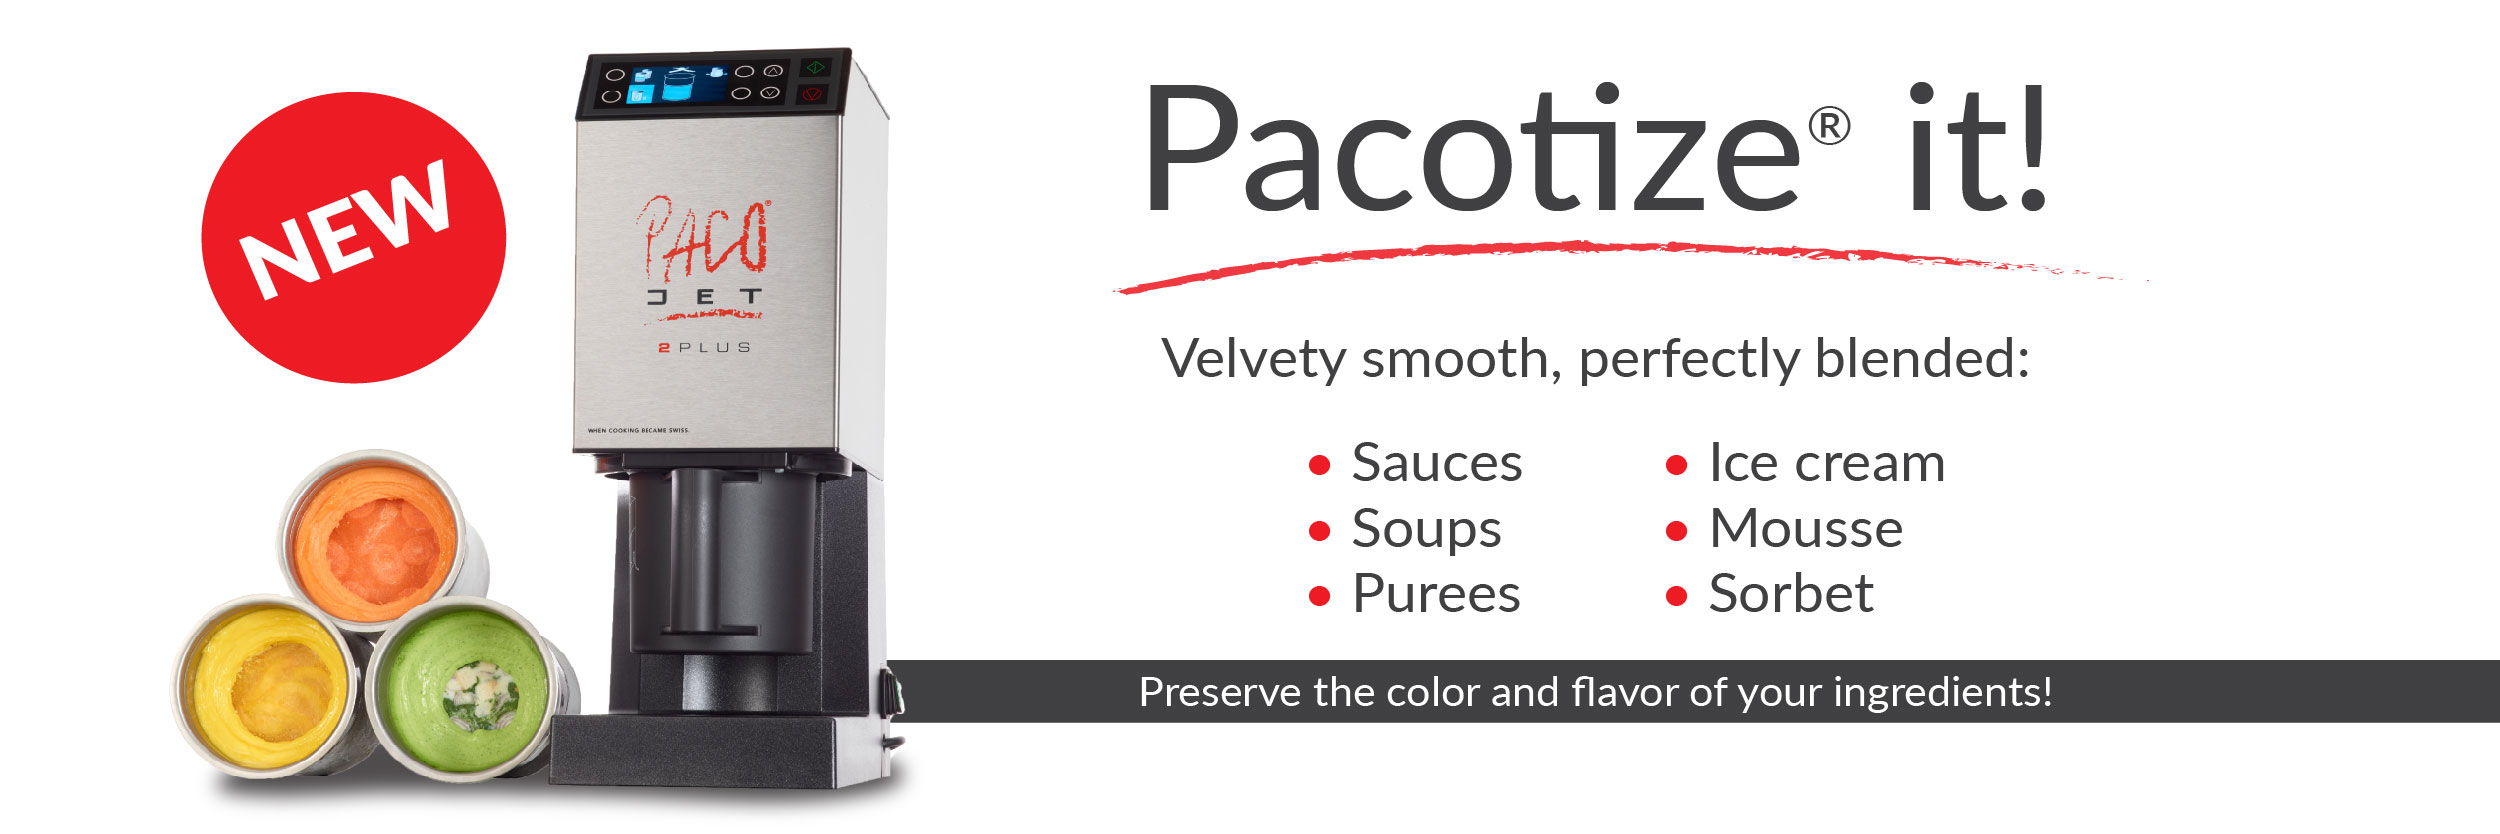 PacoJet 2 PLUS System From Chef Rubber